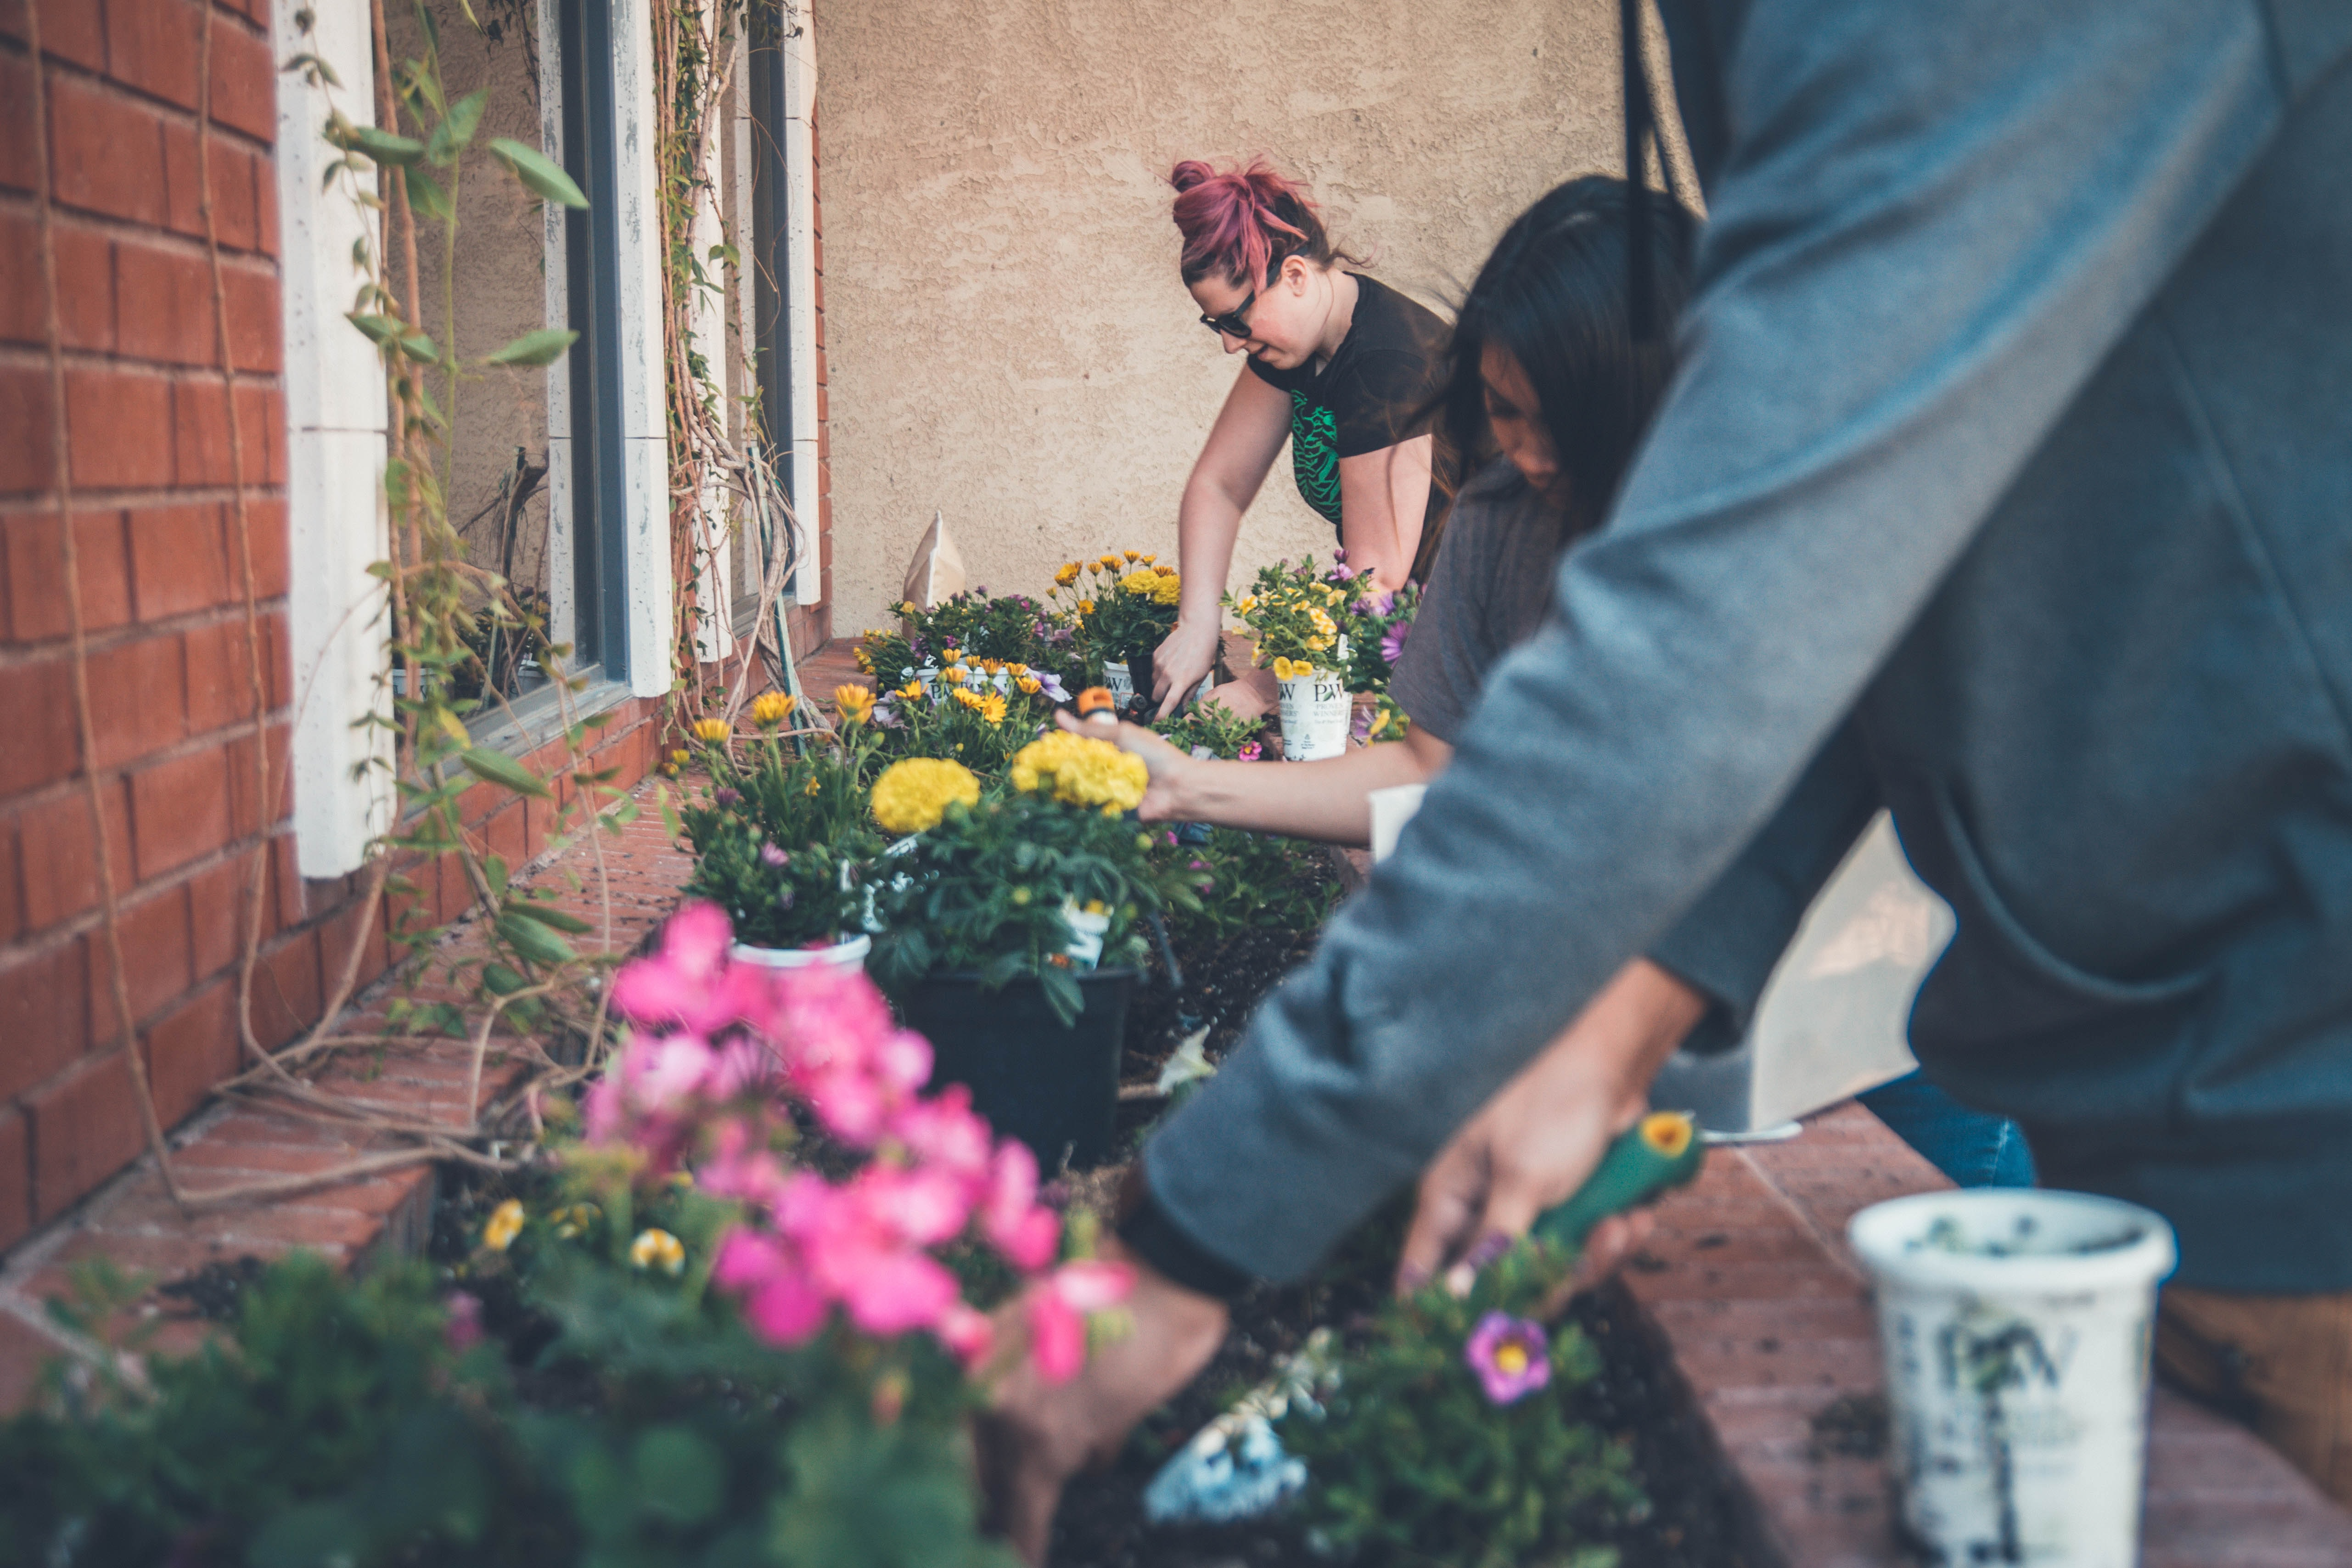 Isolation gardening: How to grow your own veg and summer flowers